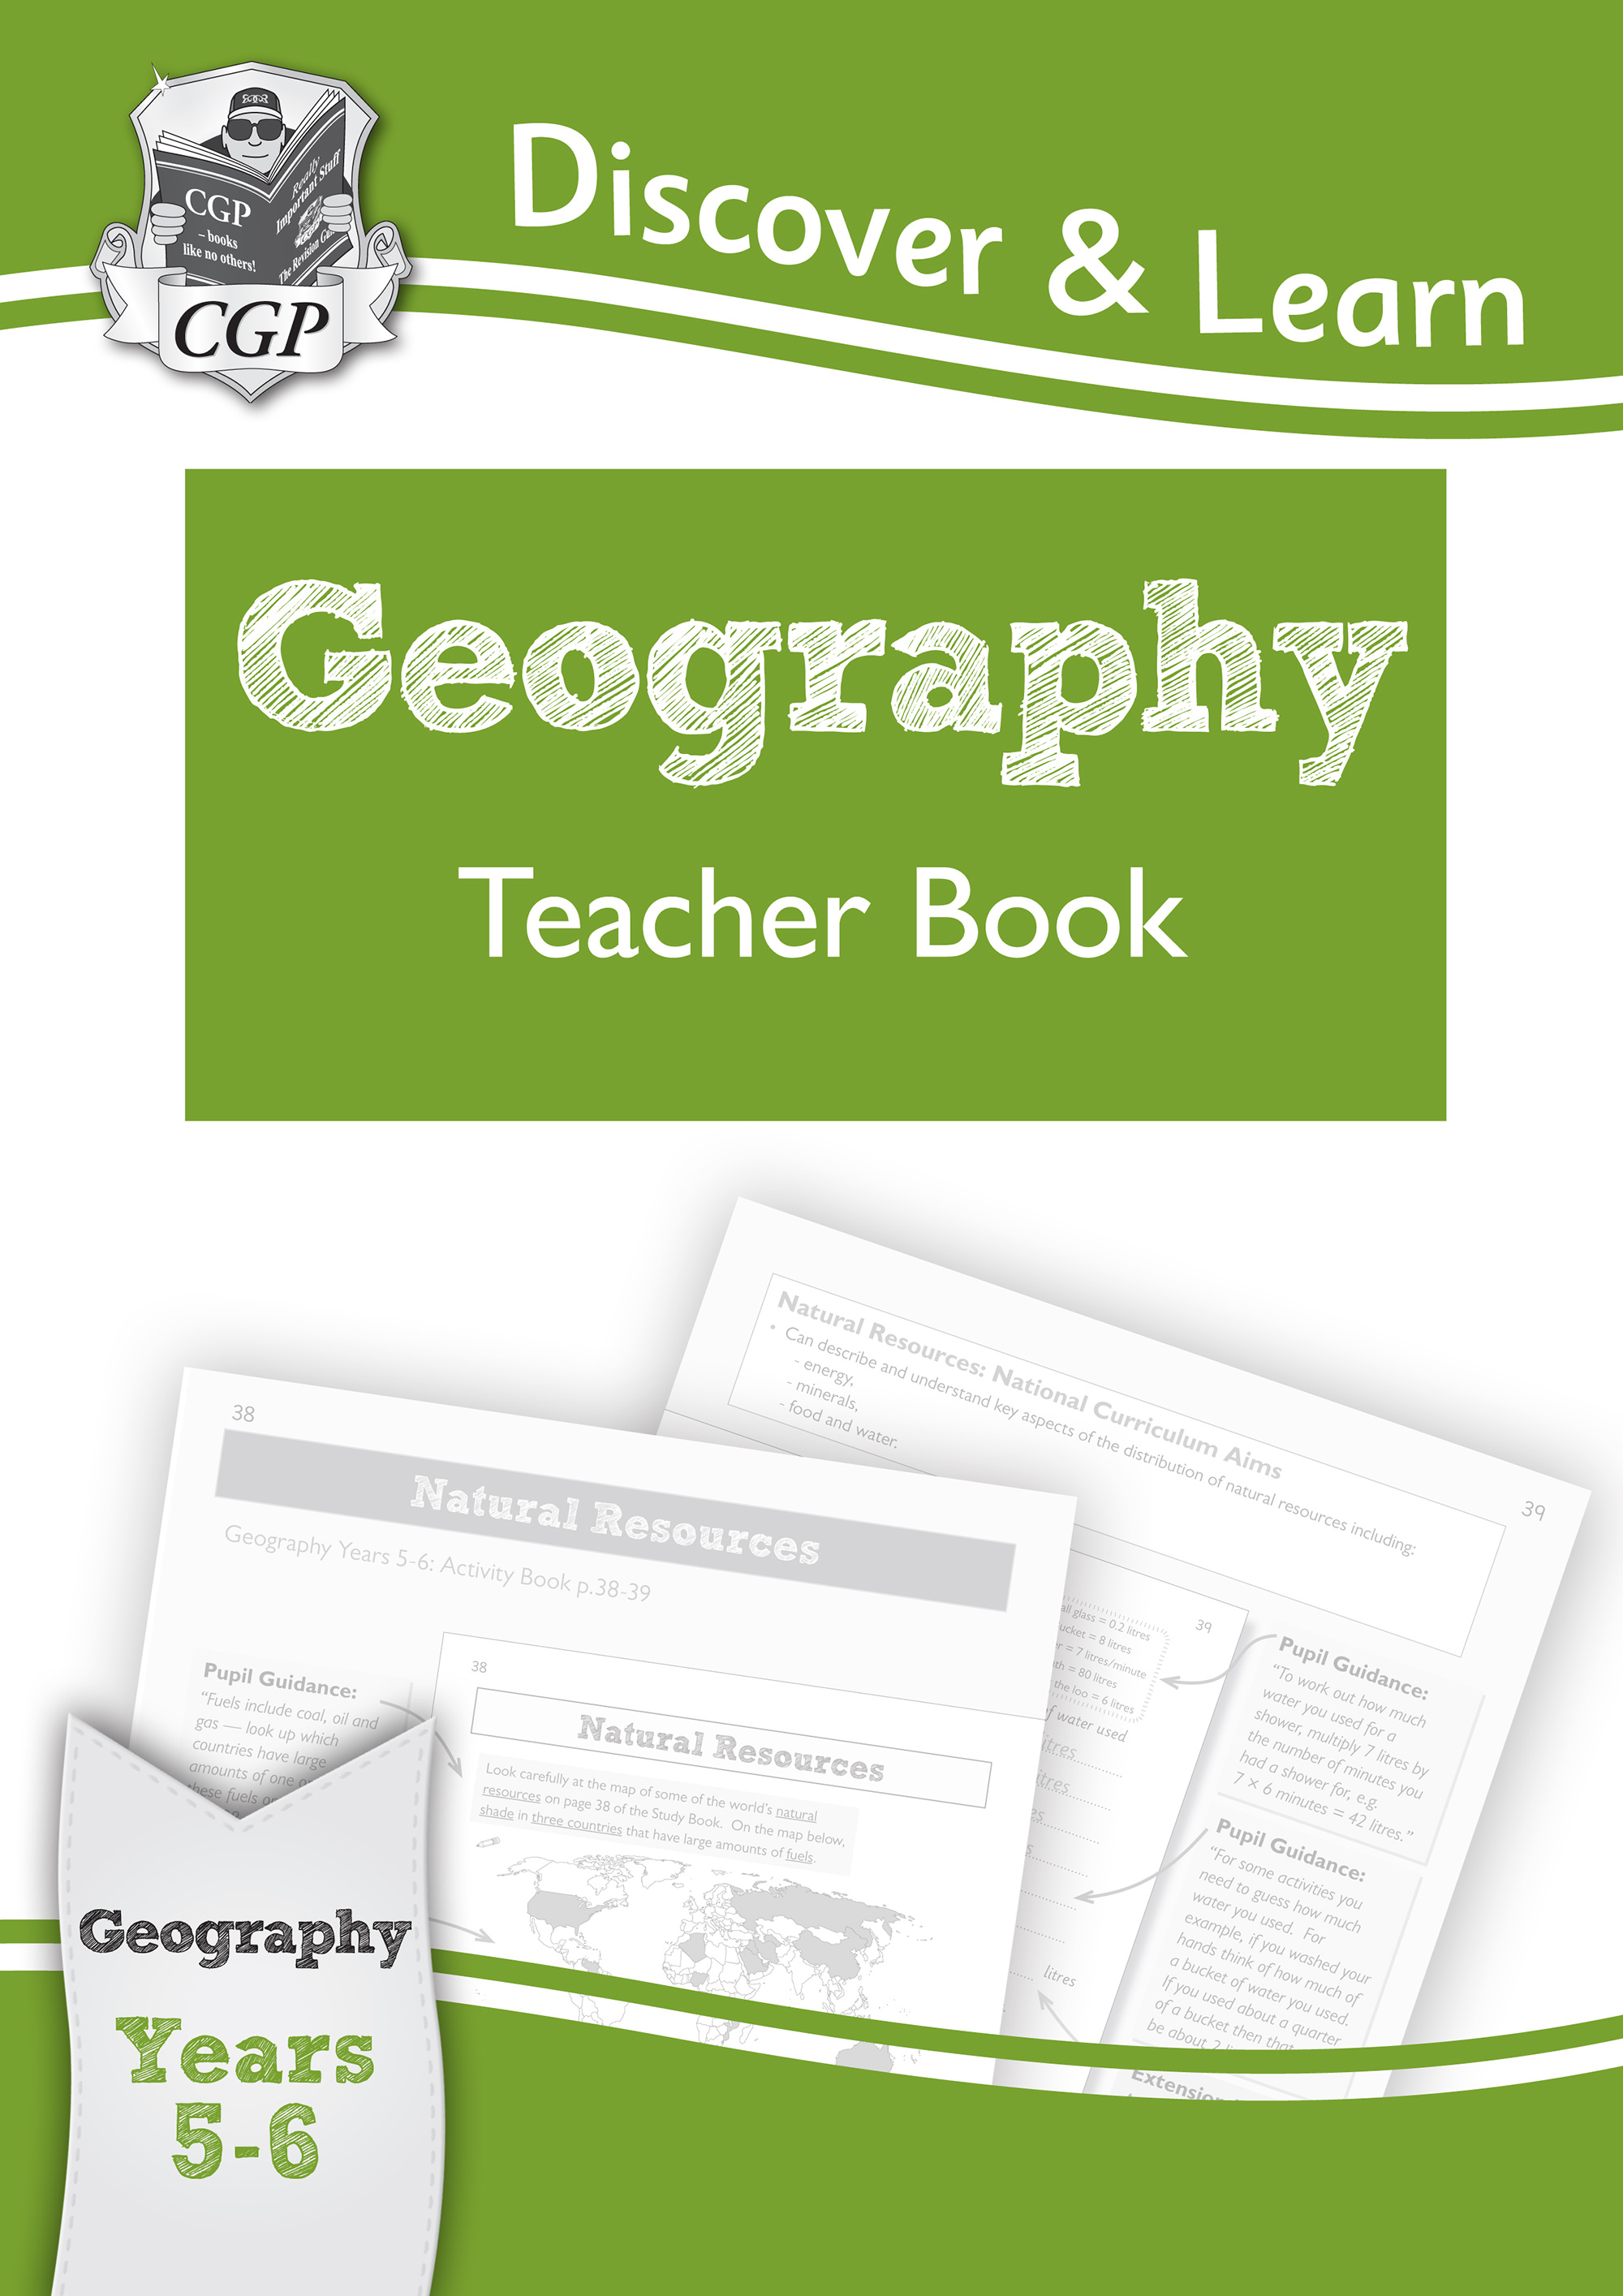 G2T21 - KS2 Discover & Learn: Geography - Teacher Book, Year 5 & 6